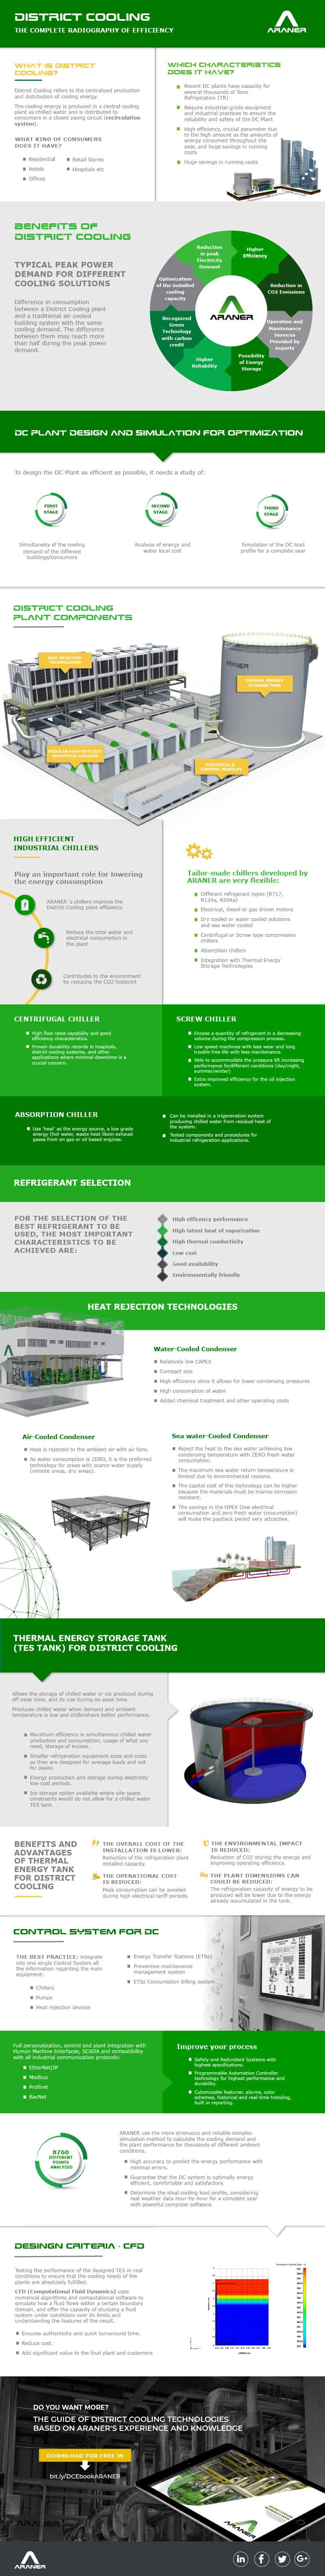 District Cooling Infographic